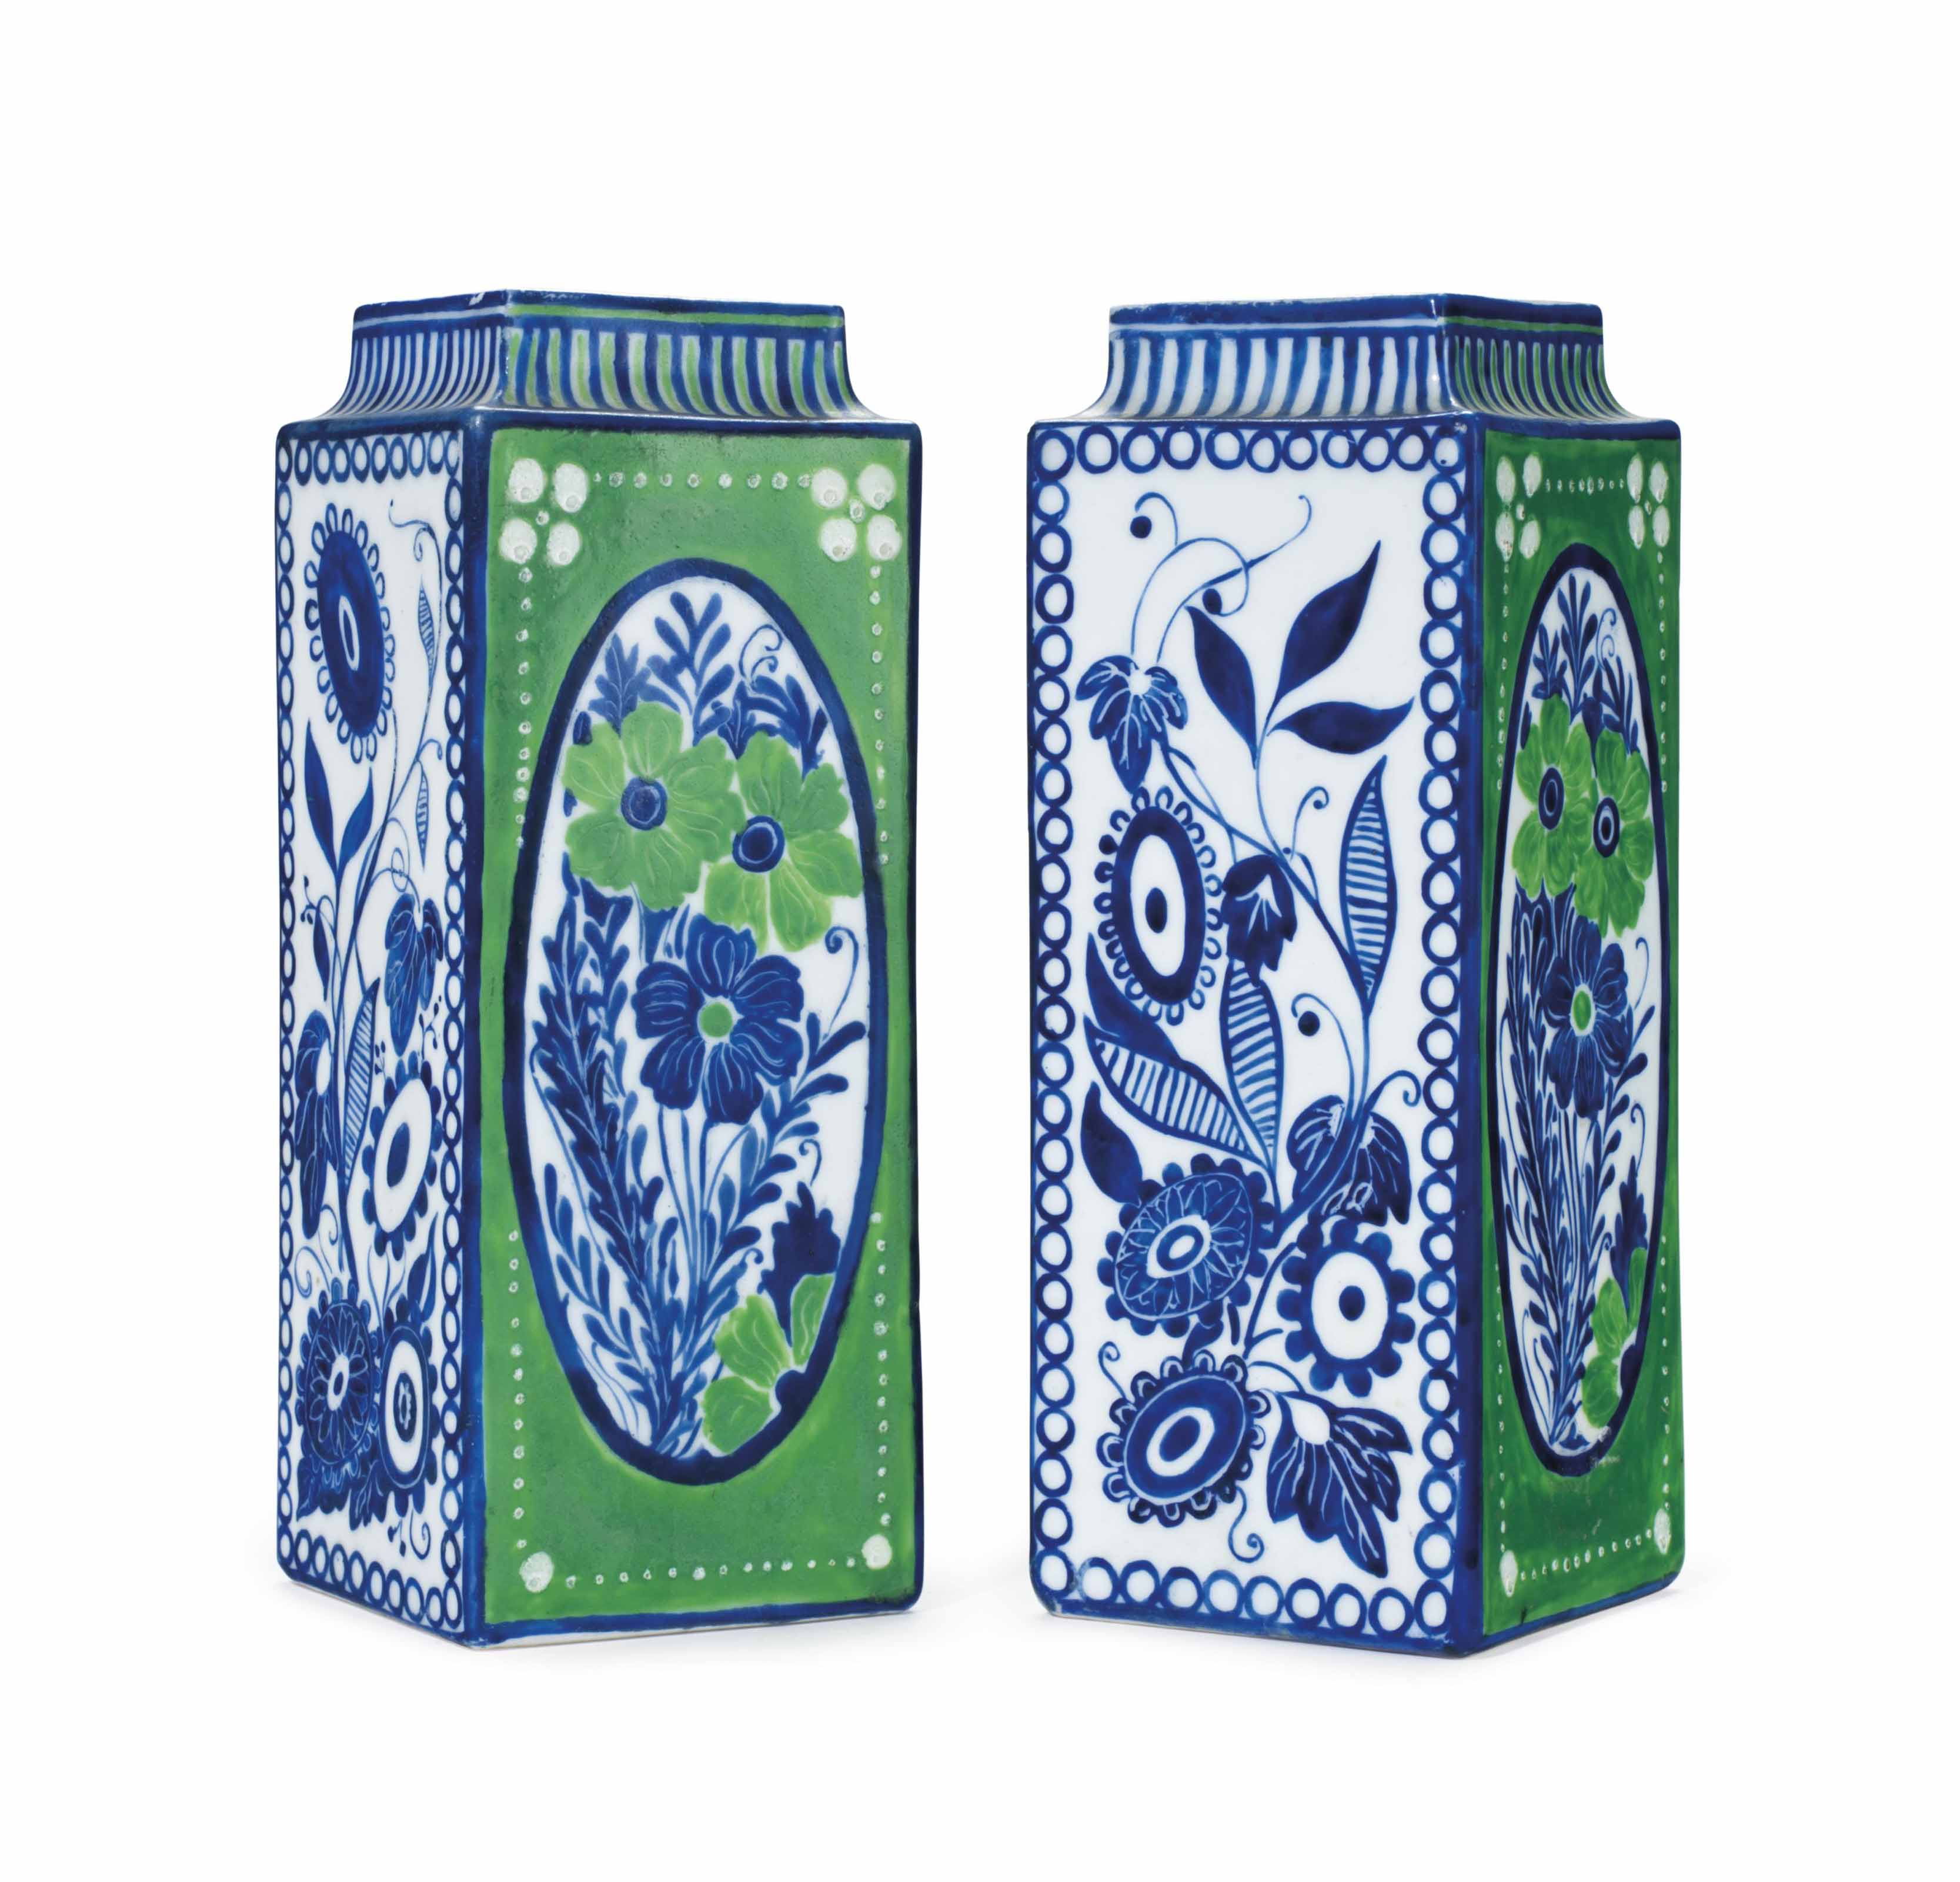 A PAIR OF FRENCH BLUE AND GREEN GLAZED PORCELAIN SQUARE VASES